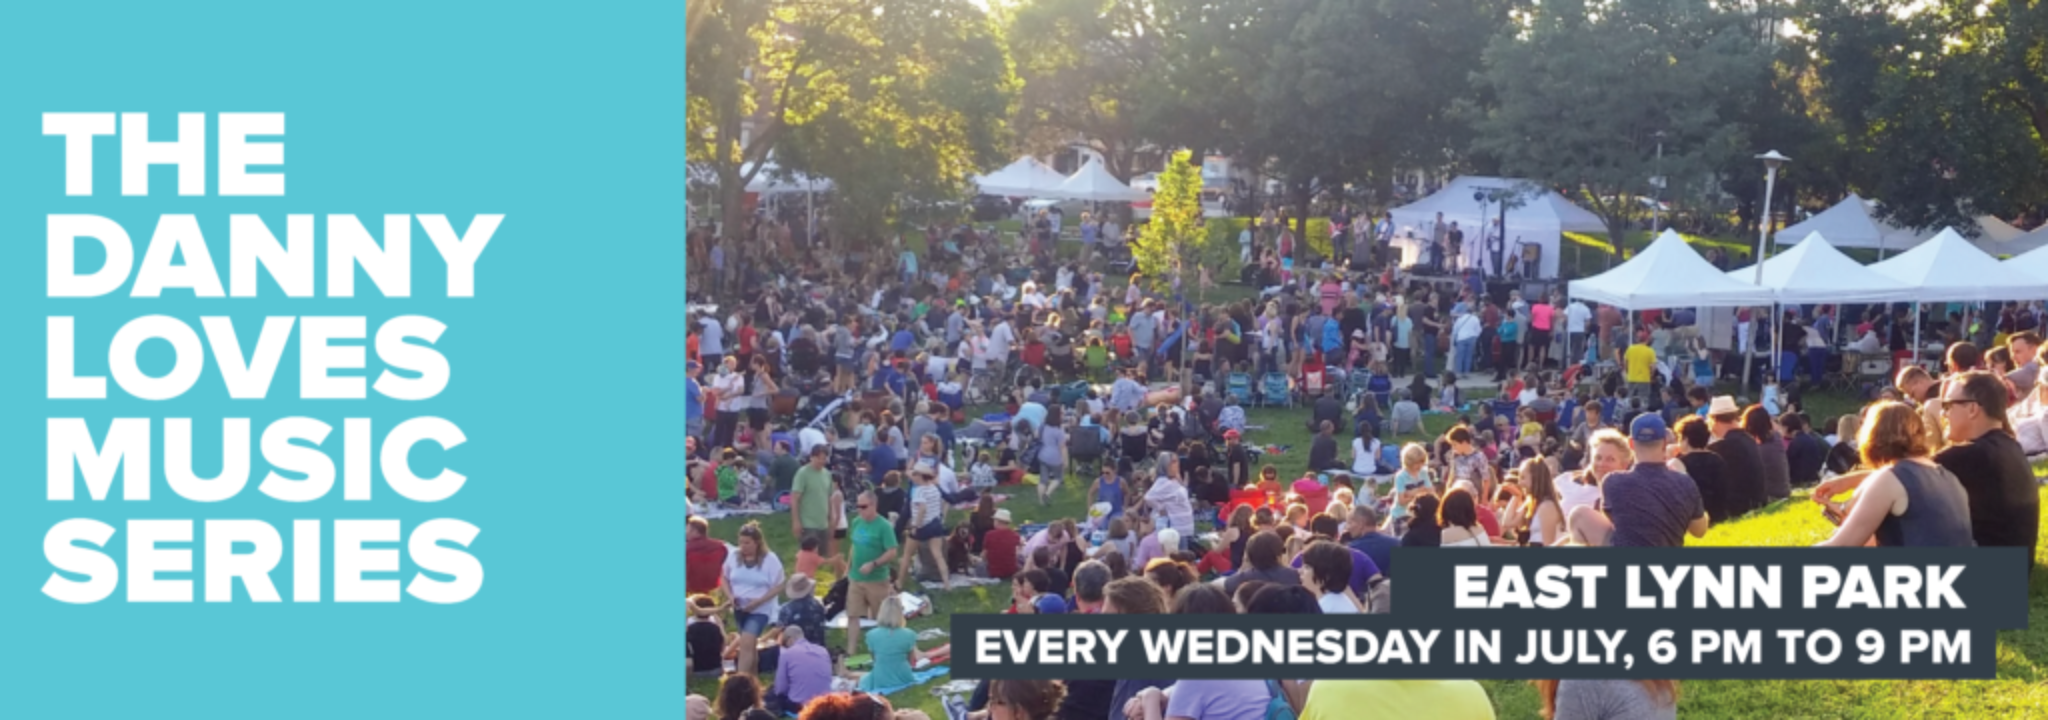 The Danny Loves Music Series - East Lynn Park - Canada Day and Every Wednesday in July. July 01 2016: Canada Day - Main Act: Julian Taylor Band - Opening Act : Simone Denny. July 06 - Paul Reddick. July 13 Stephen Stanley. July 20. Byrds! Byrds! Byrds!. July 27 - Main Act: Ted Peters